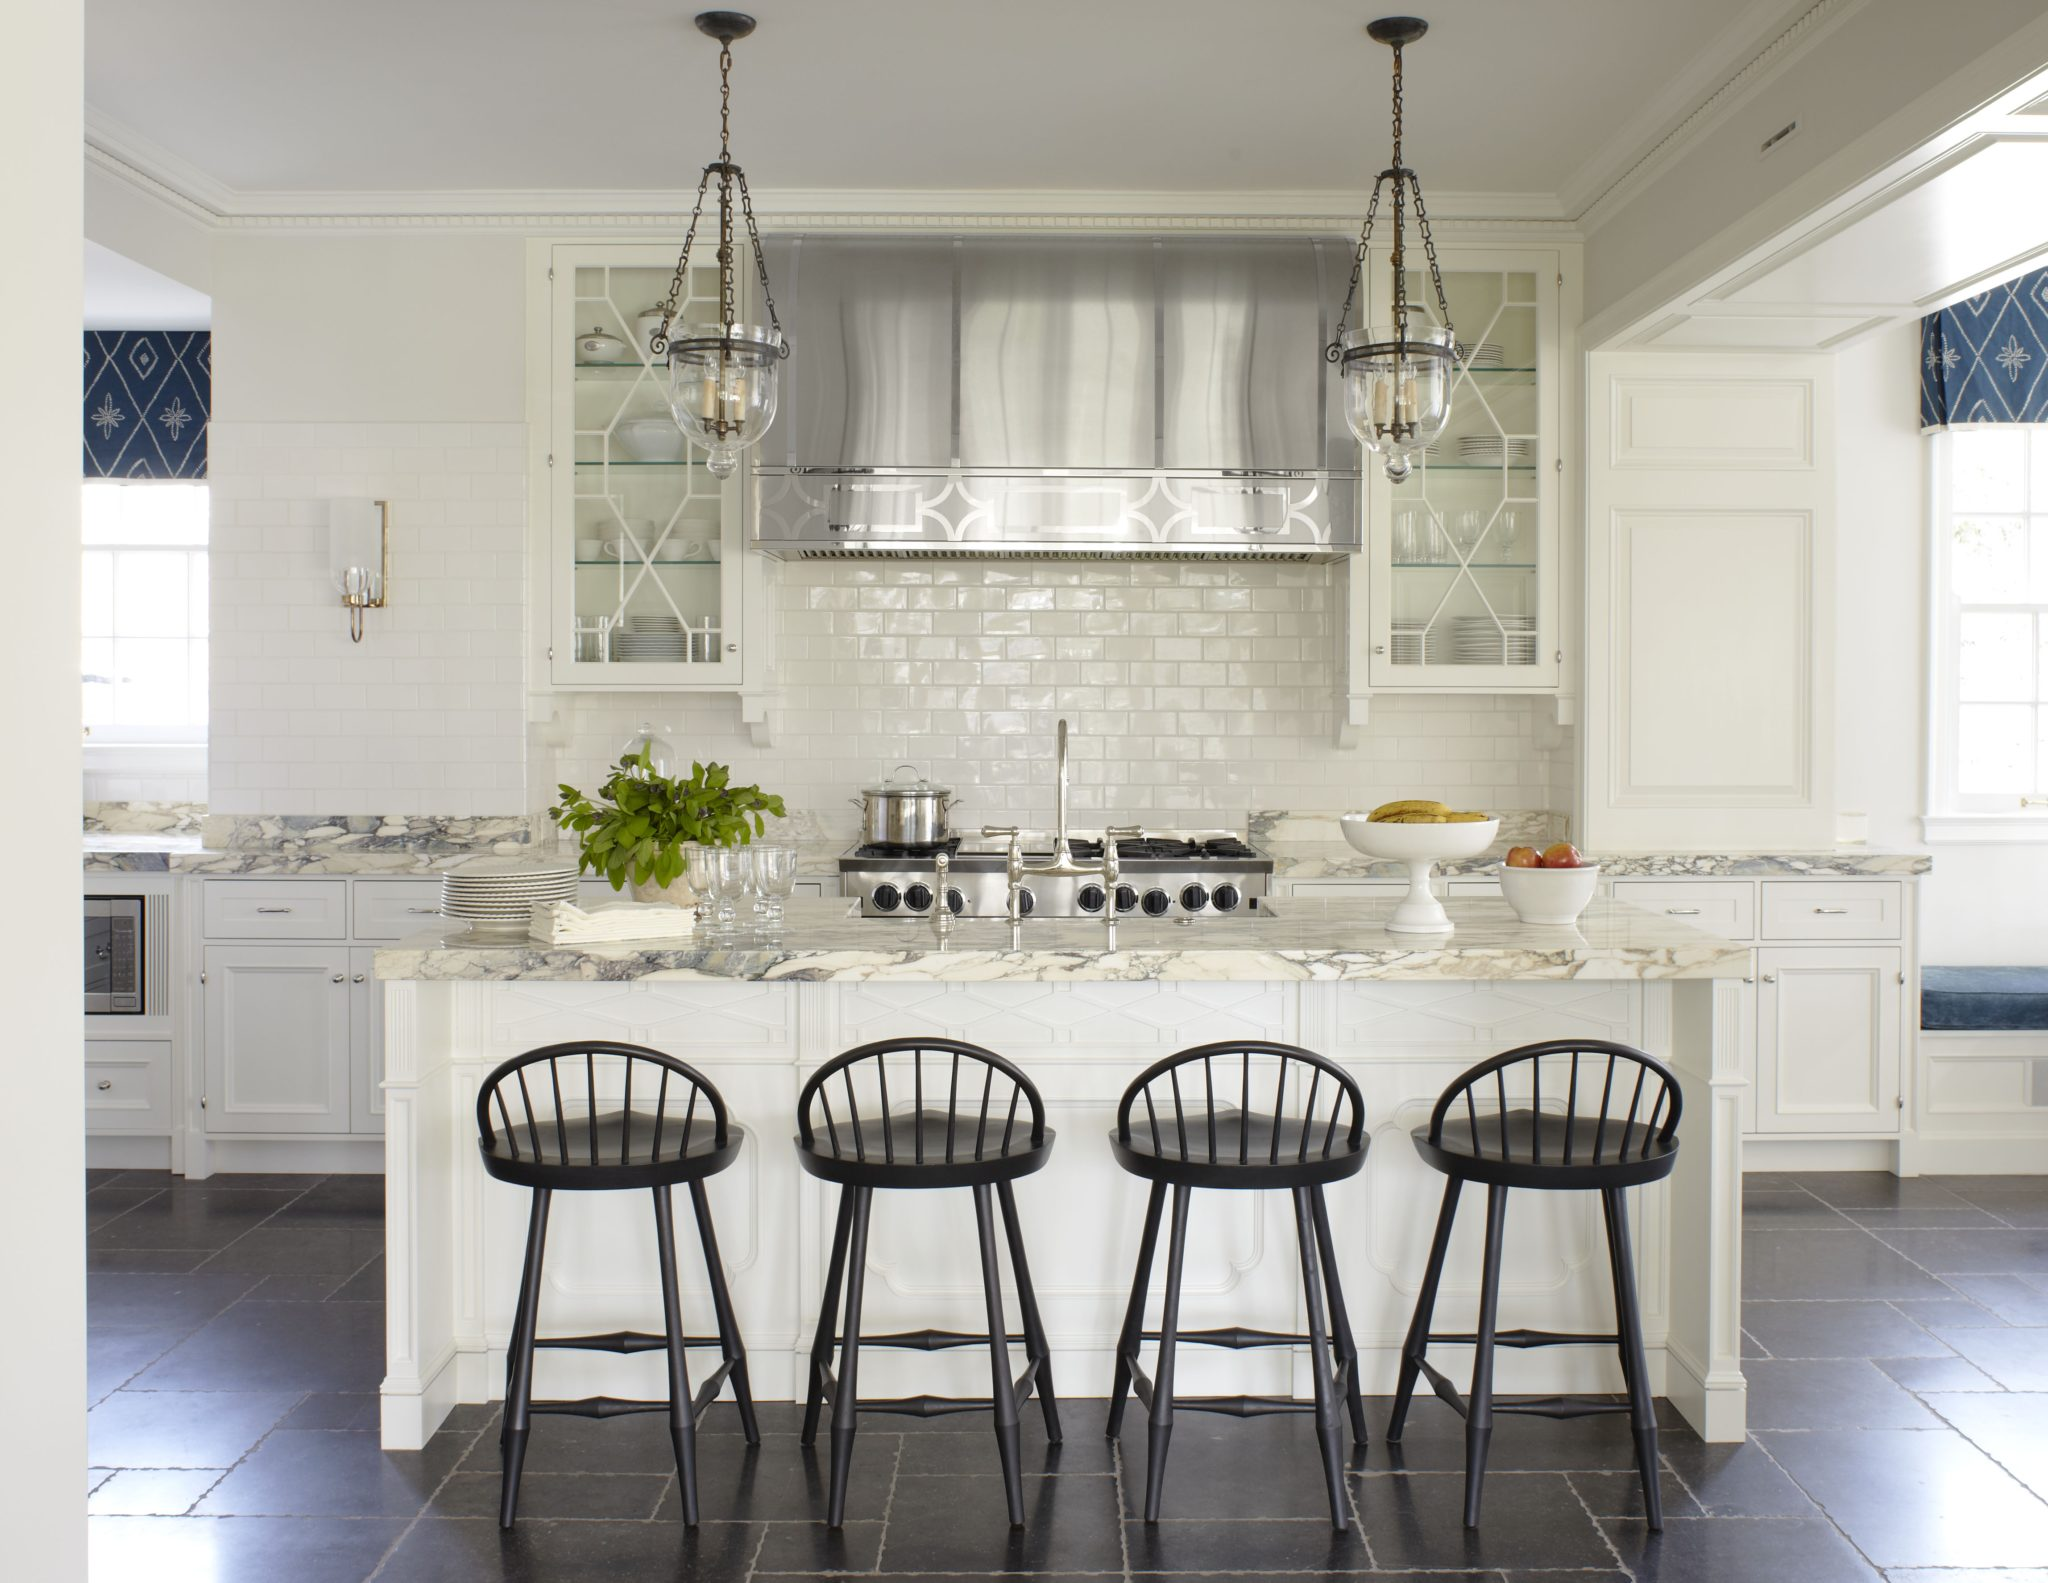 Extra large kitchen with island and bar seating, pendant lighting and subway tile. By James Michael Howard